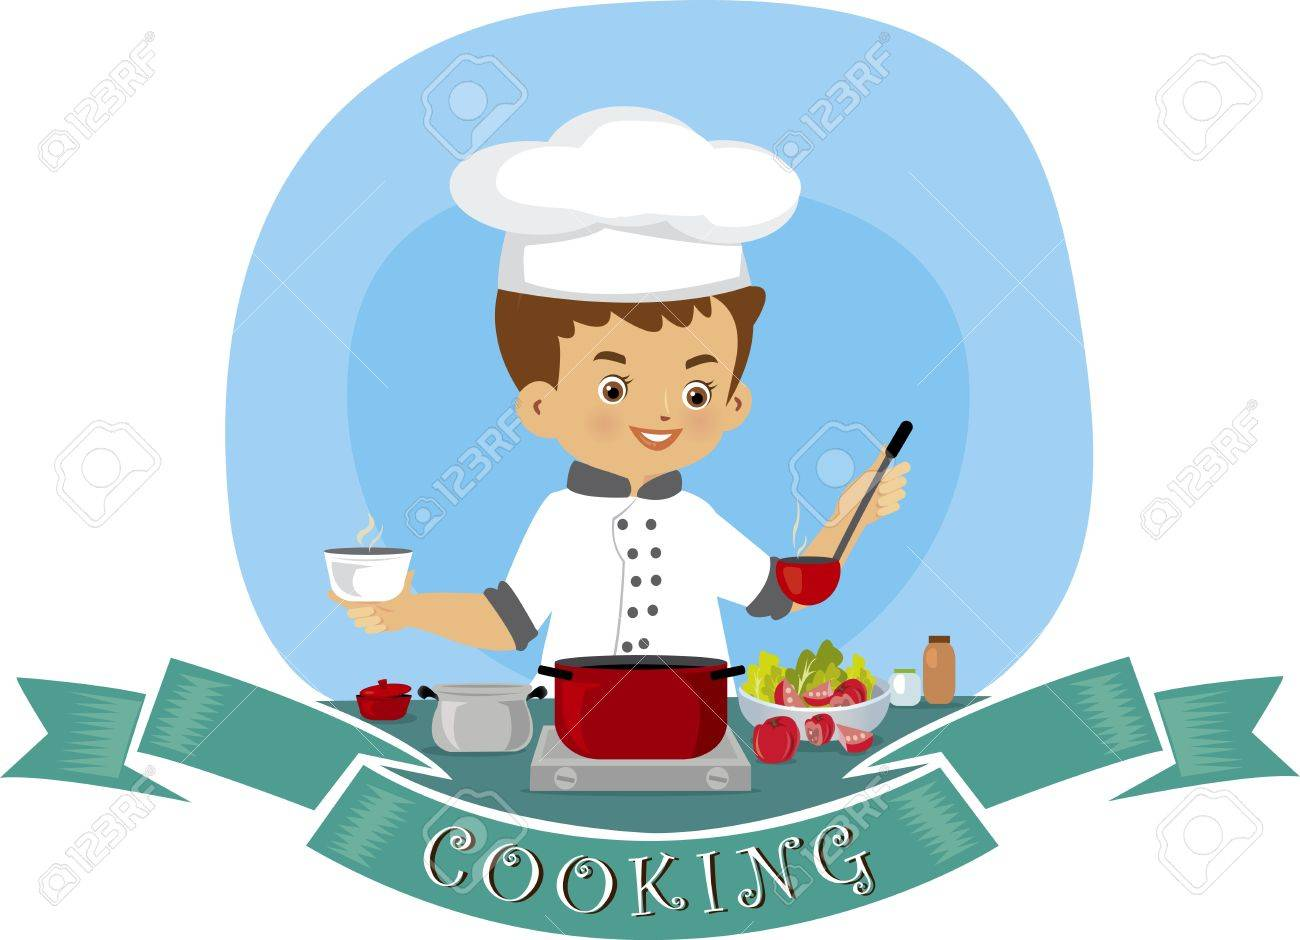 A vector illustration of a young man cooking in the kitchen Stock Vector - 21049379